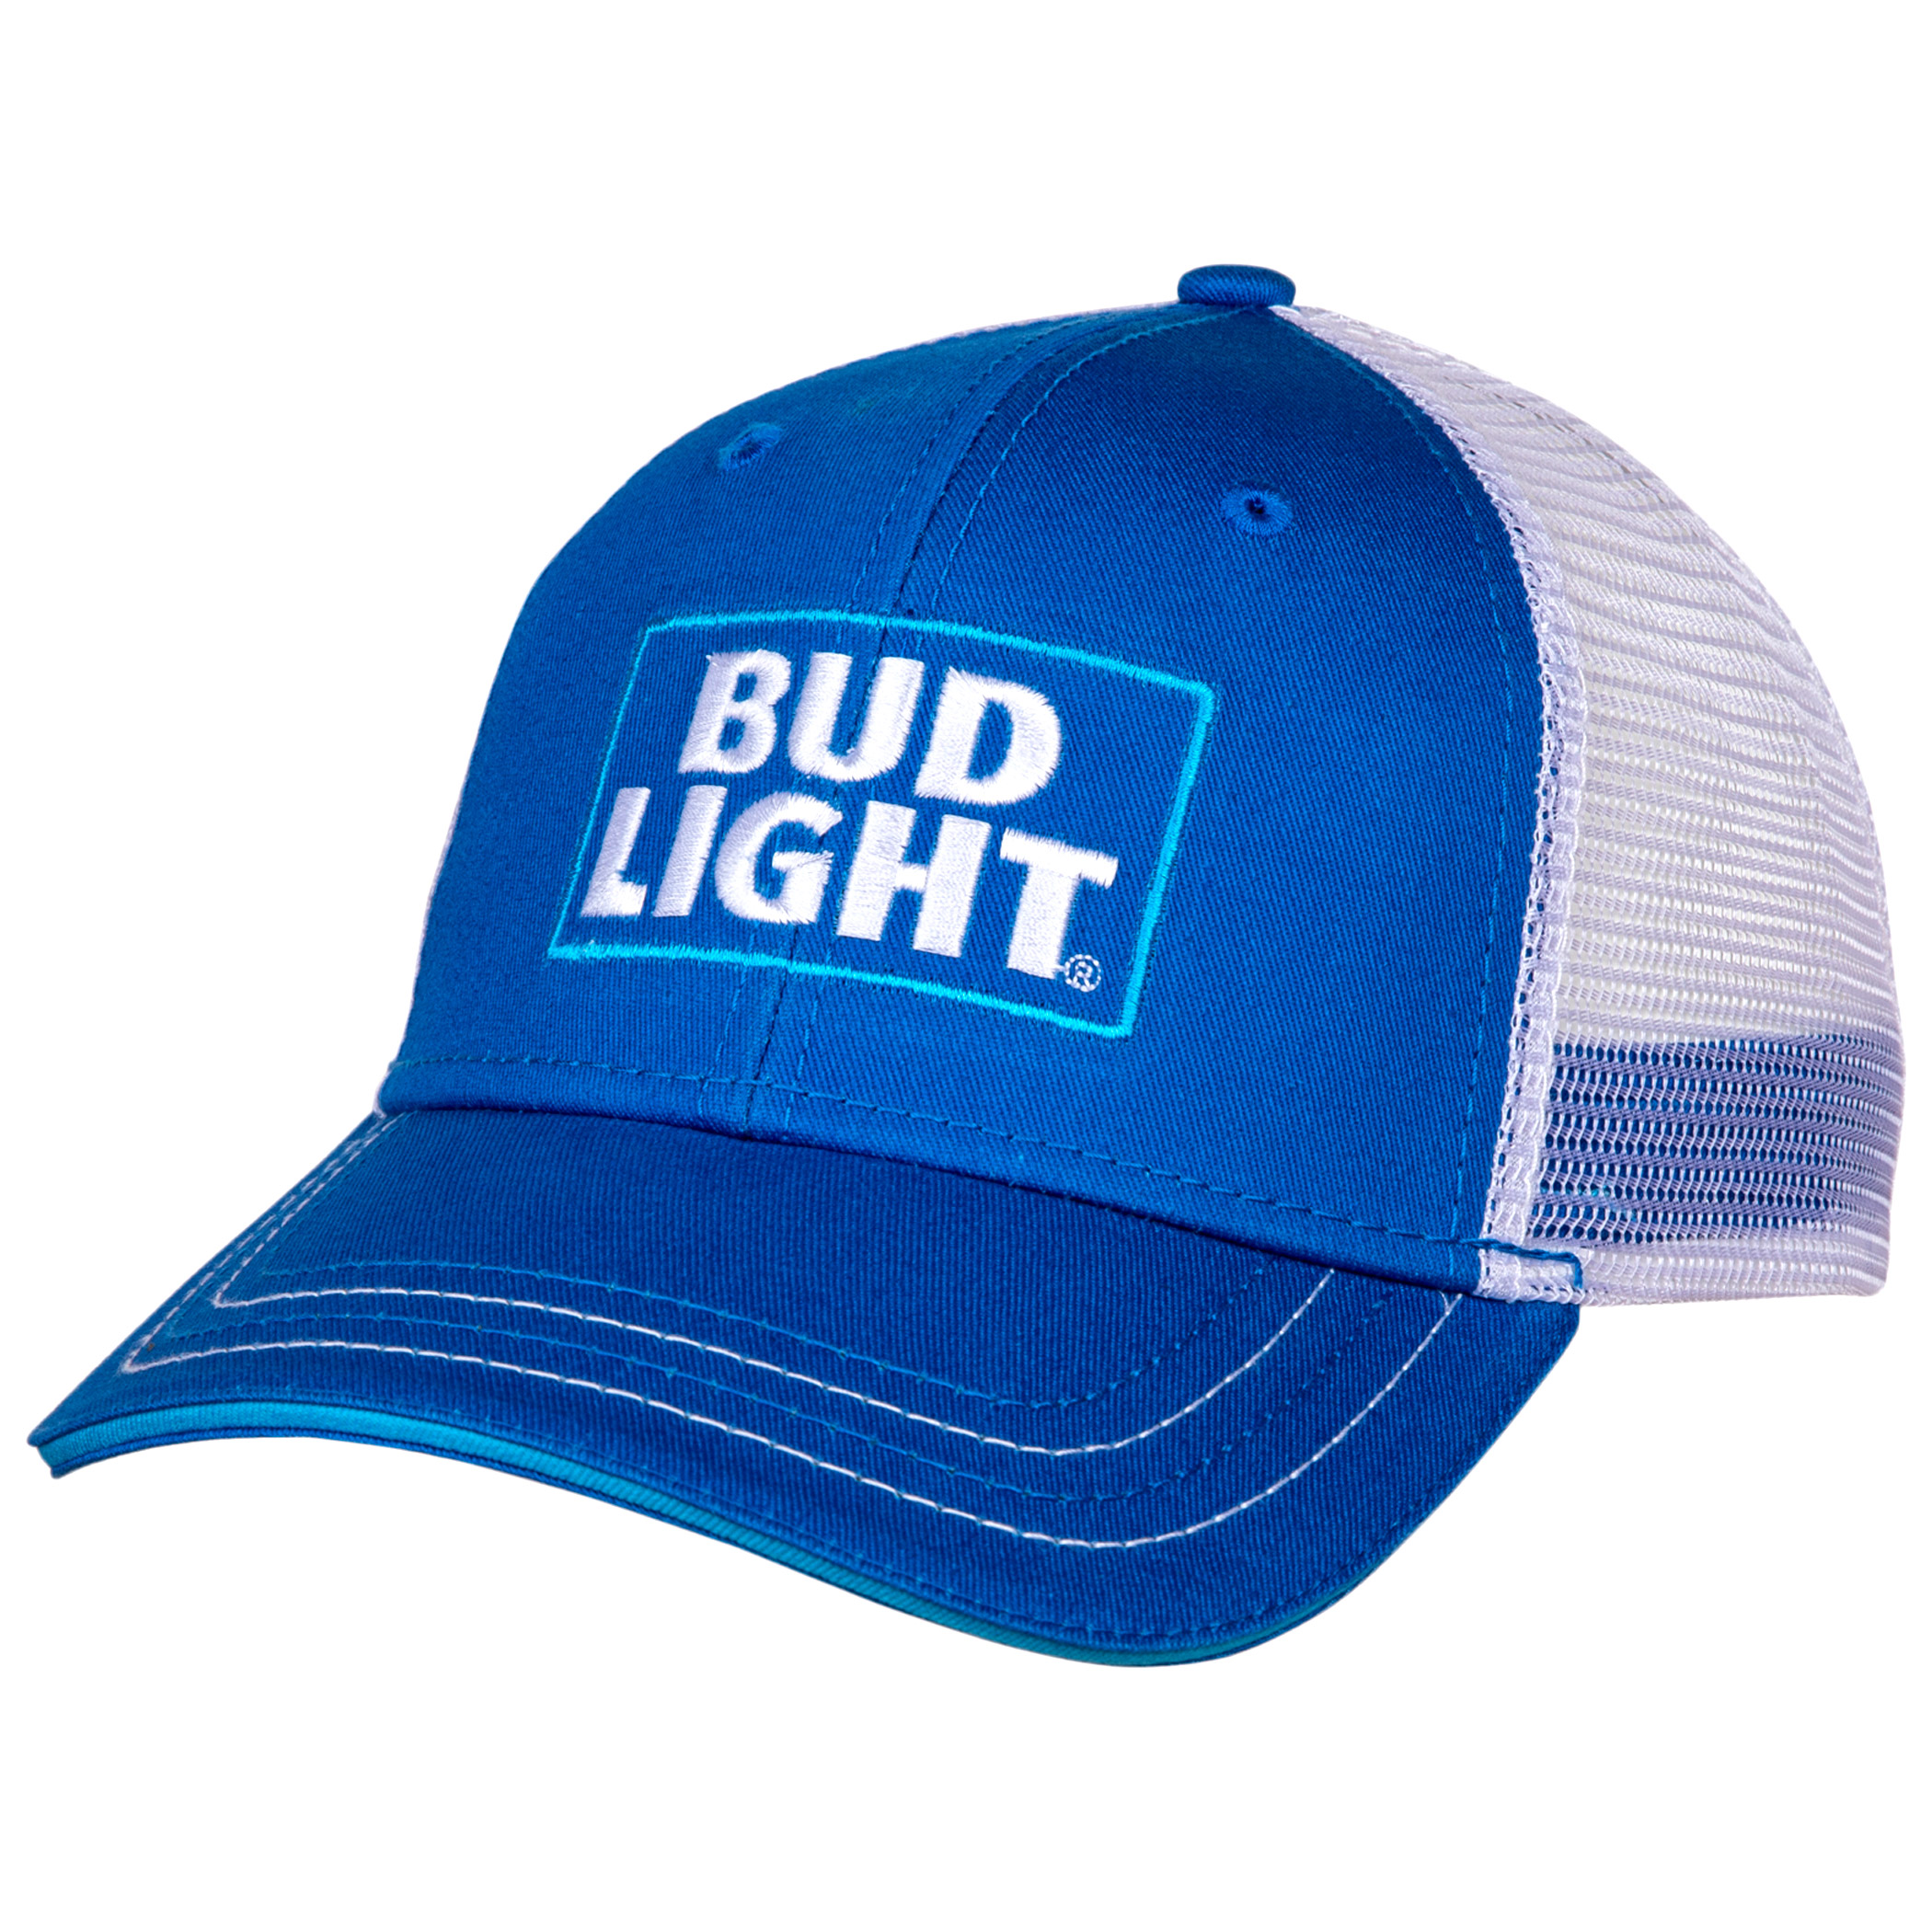 Bud Light Logo Adjustable Snapback Mesh Trucker Hat